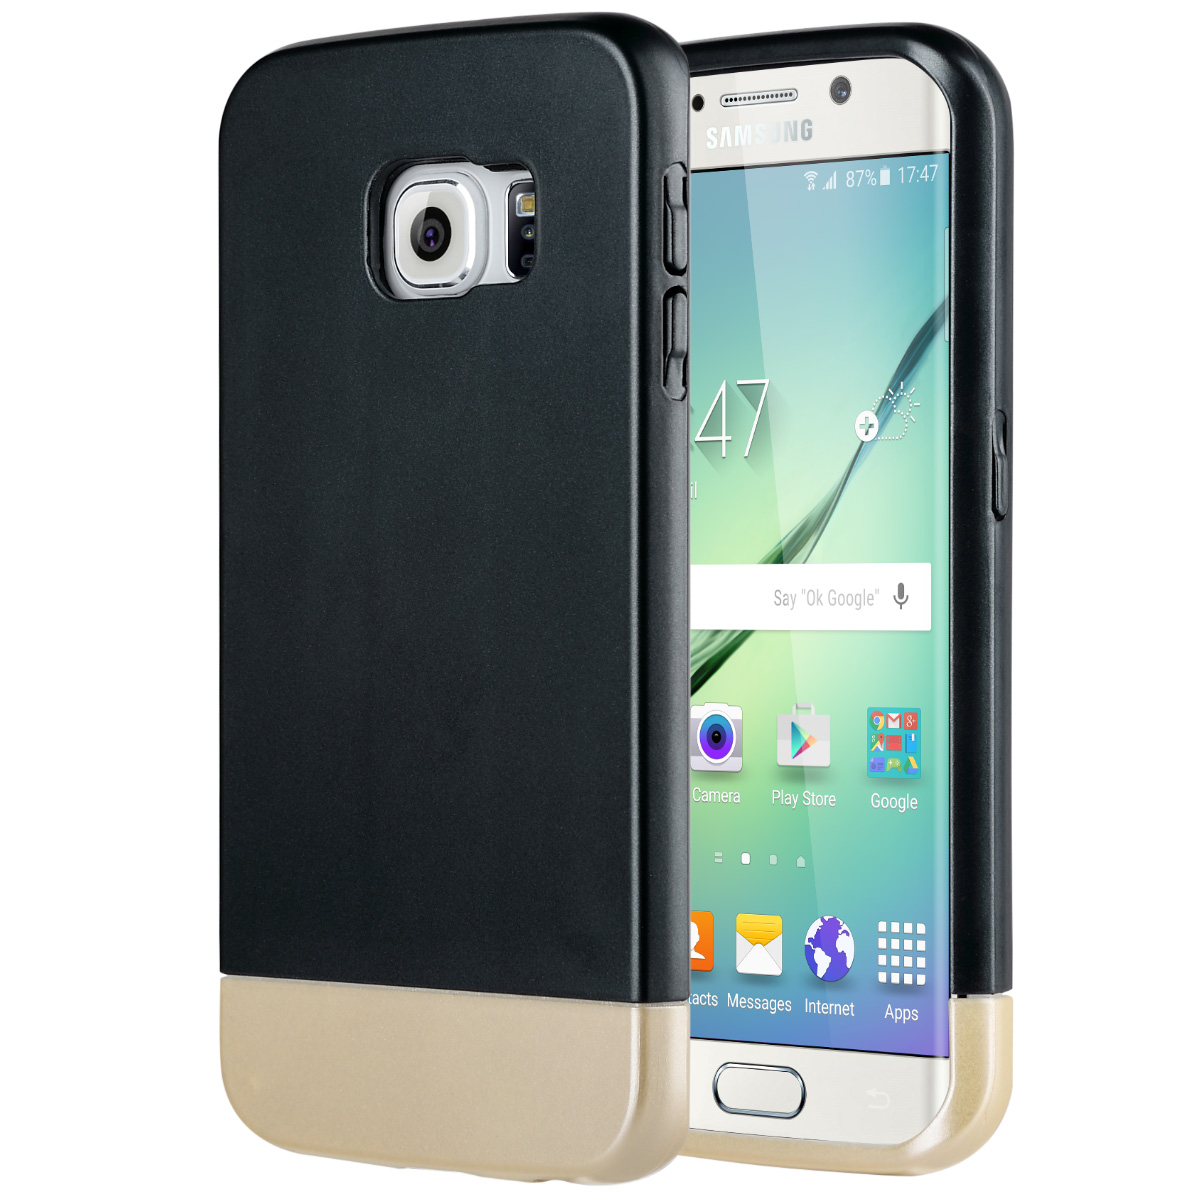 "ULAK Galaxy S6 Edge Case, Hybrid Case with Inner Soft TPU and Hard Outer Matte PC + Sliding Style Easy Installation for Samsung Galaxy S6 Edge (5.1"" inch) 2015 Release"